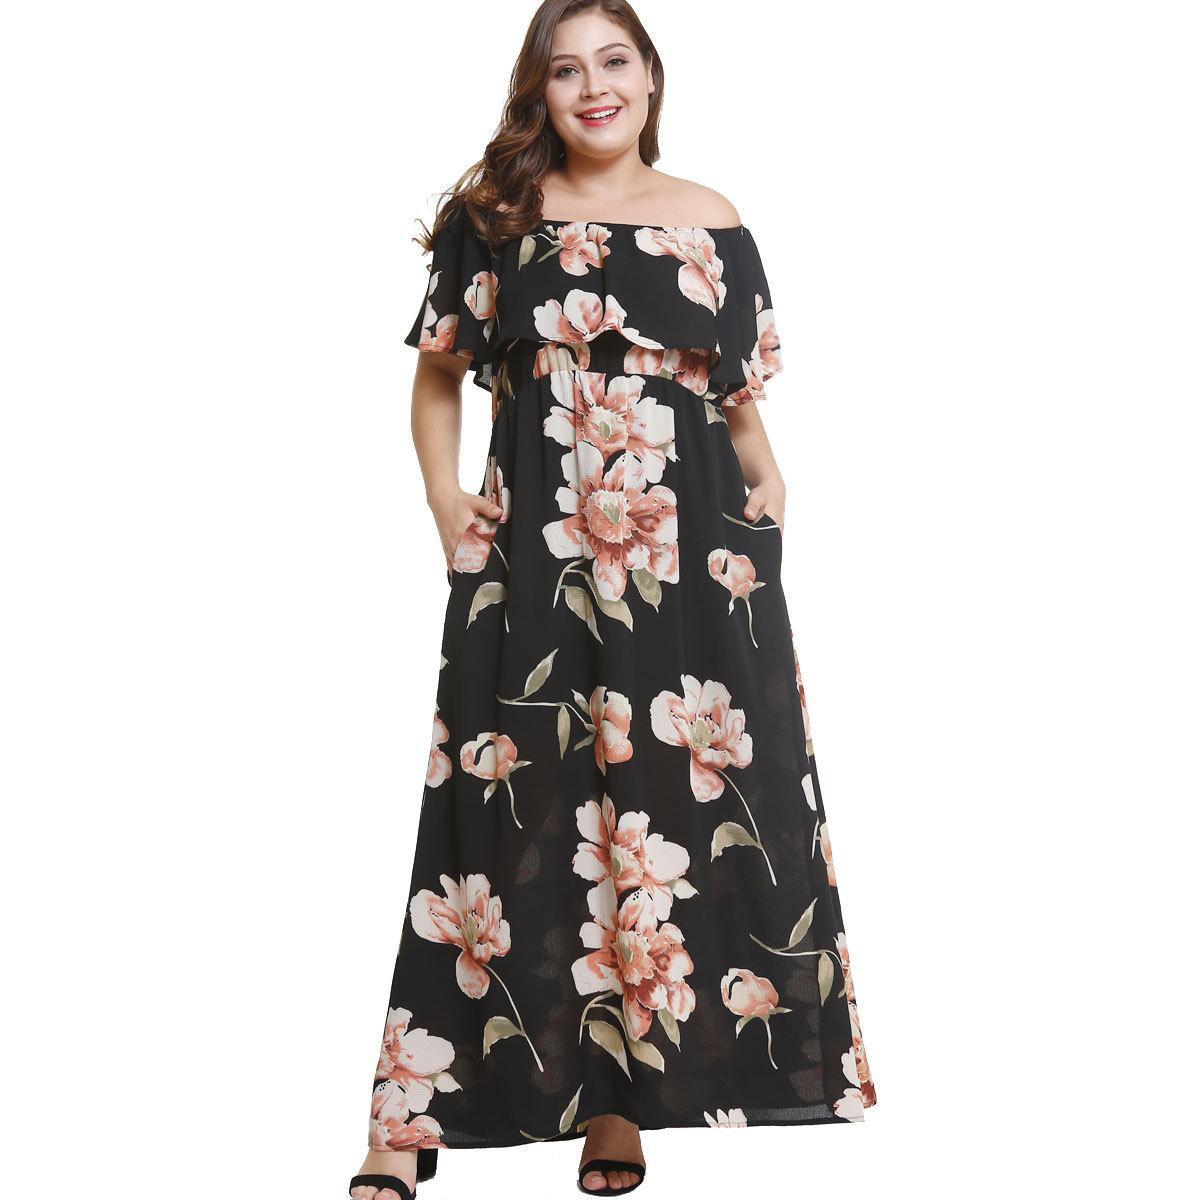 d3793e8b5e 2018 Women Boho Floral Print Maxi Dresses Pocket Off Shoulder Slash Neck  Short Sleeve Ruffle Casual Beach Ankle Length Long A Line Dress Casual  Purple ...